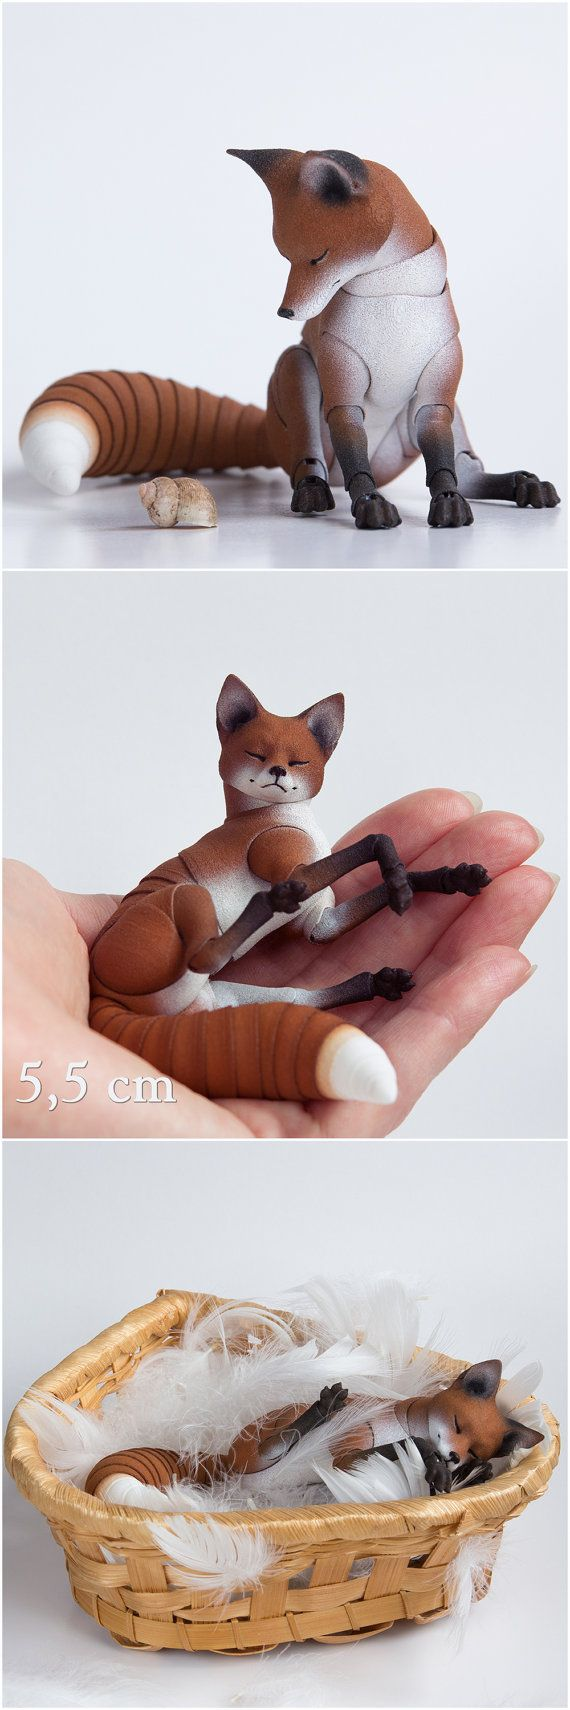 Pre-order. An adult fox is 3D printed BJD. Sizes start from 5,5 cm to 10,5 cm, one or 2 heads. Ball jointed dolls are for the pre-order.